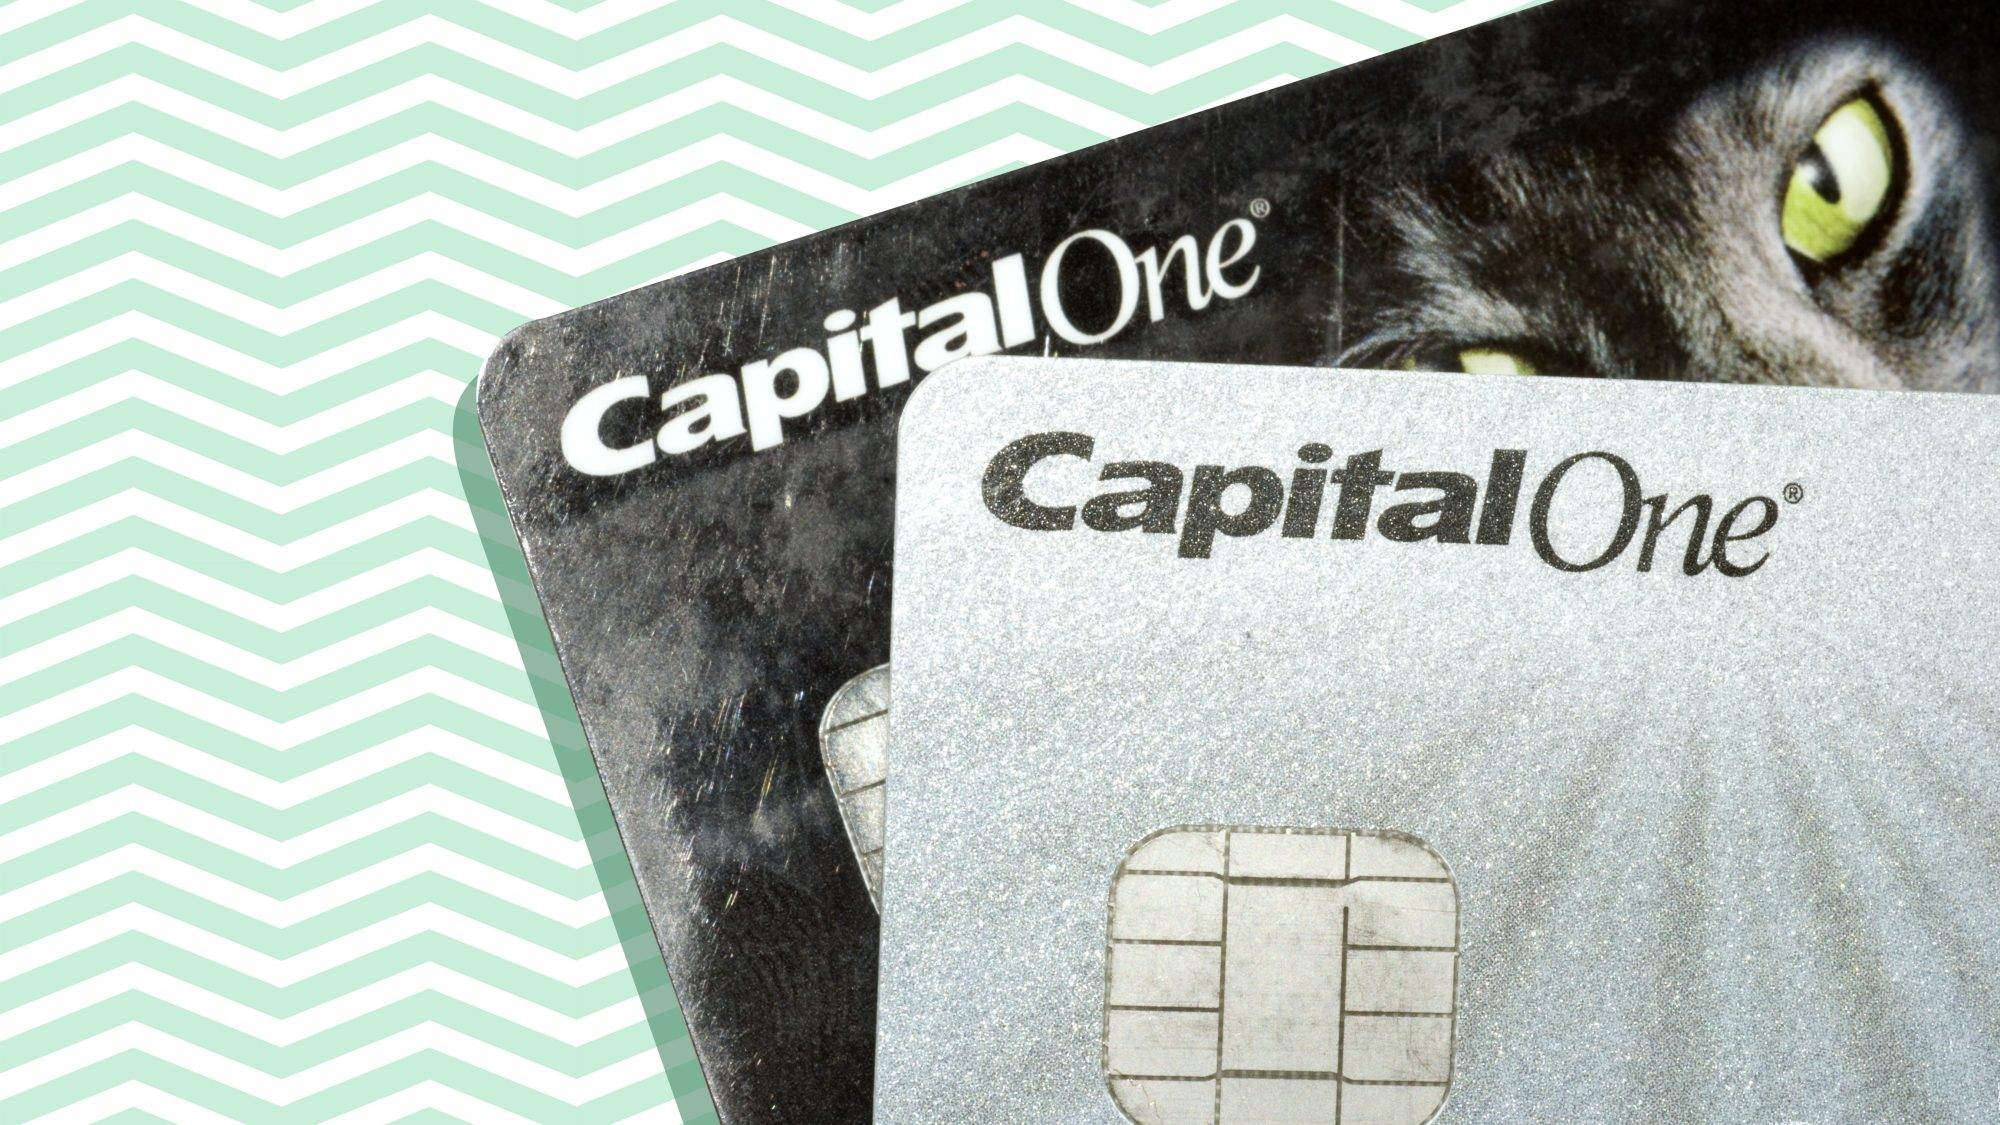 Capital One Just Had a Major Data Breach—Here's How to Protect Your Credit